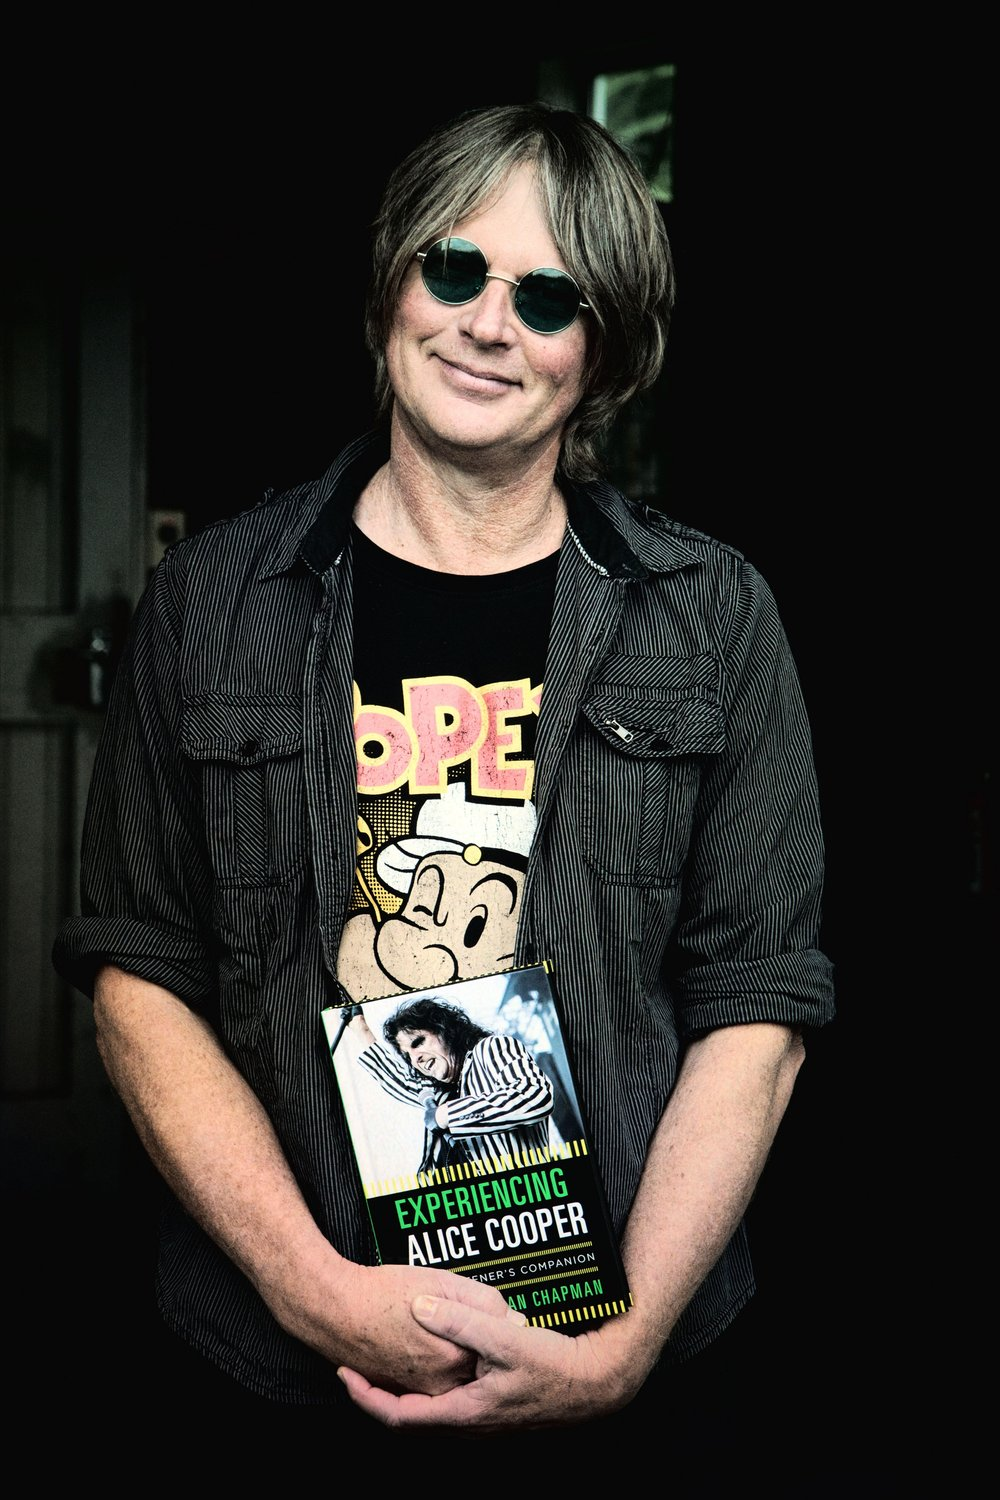 Photography by Caroline Davies.